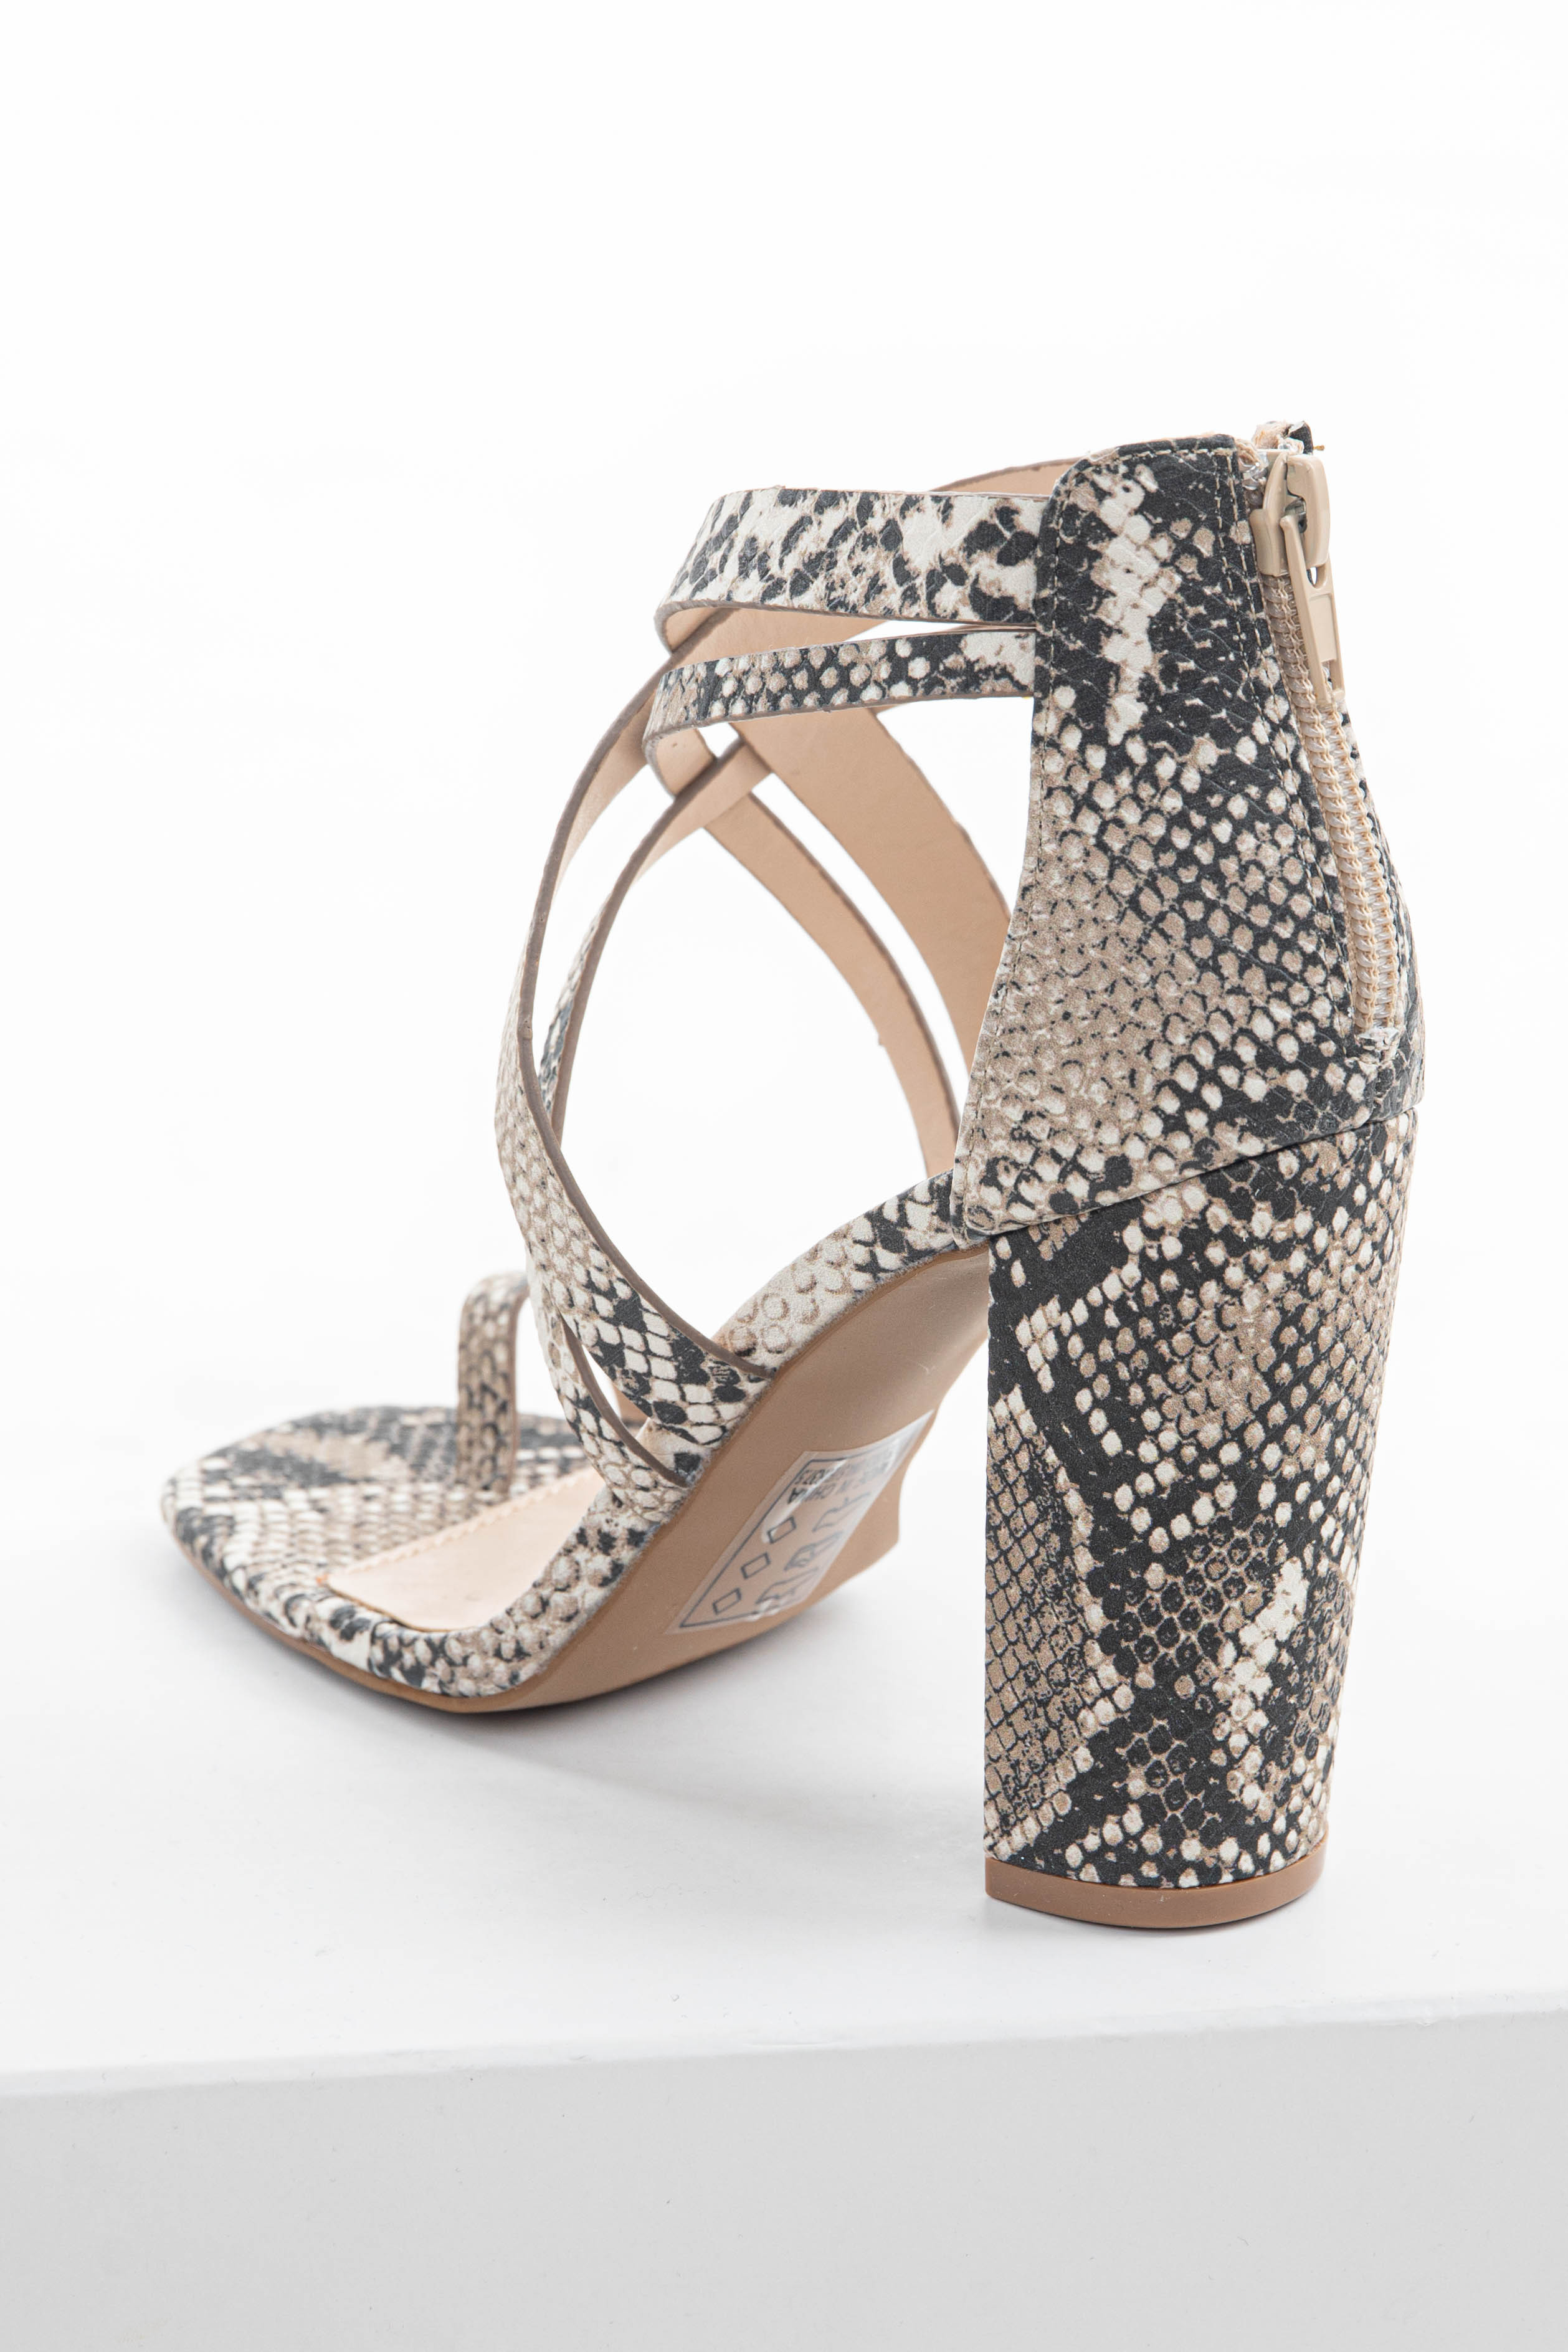 Latte Snake Print Strappy Heels with Toe Strap